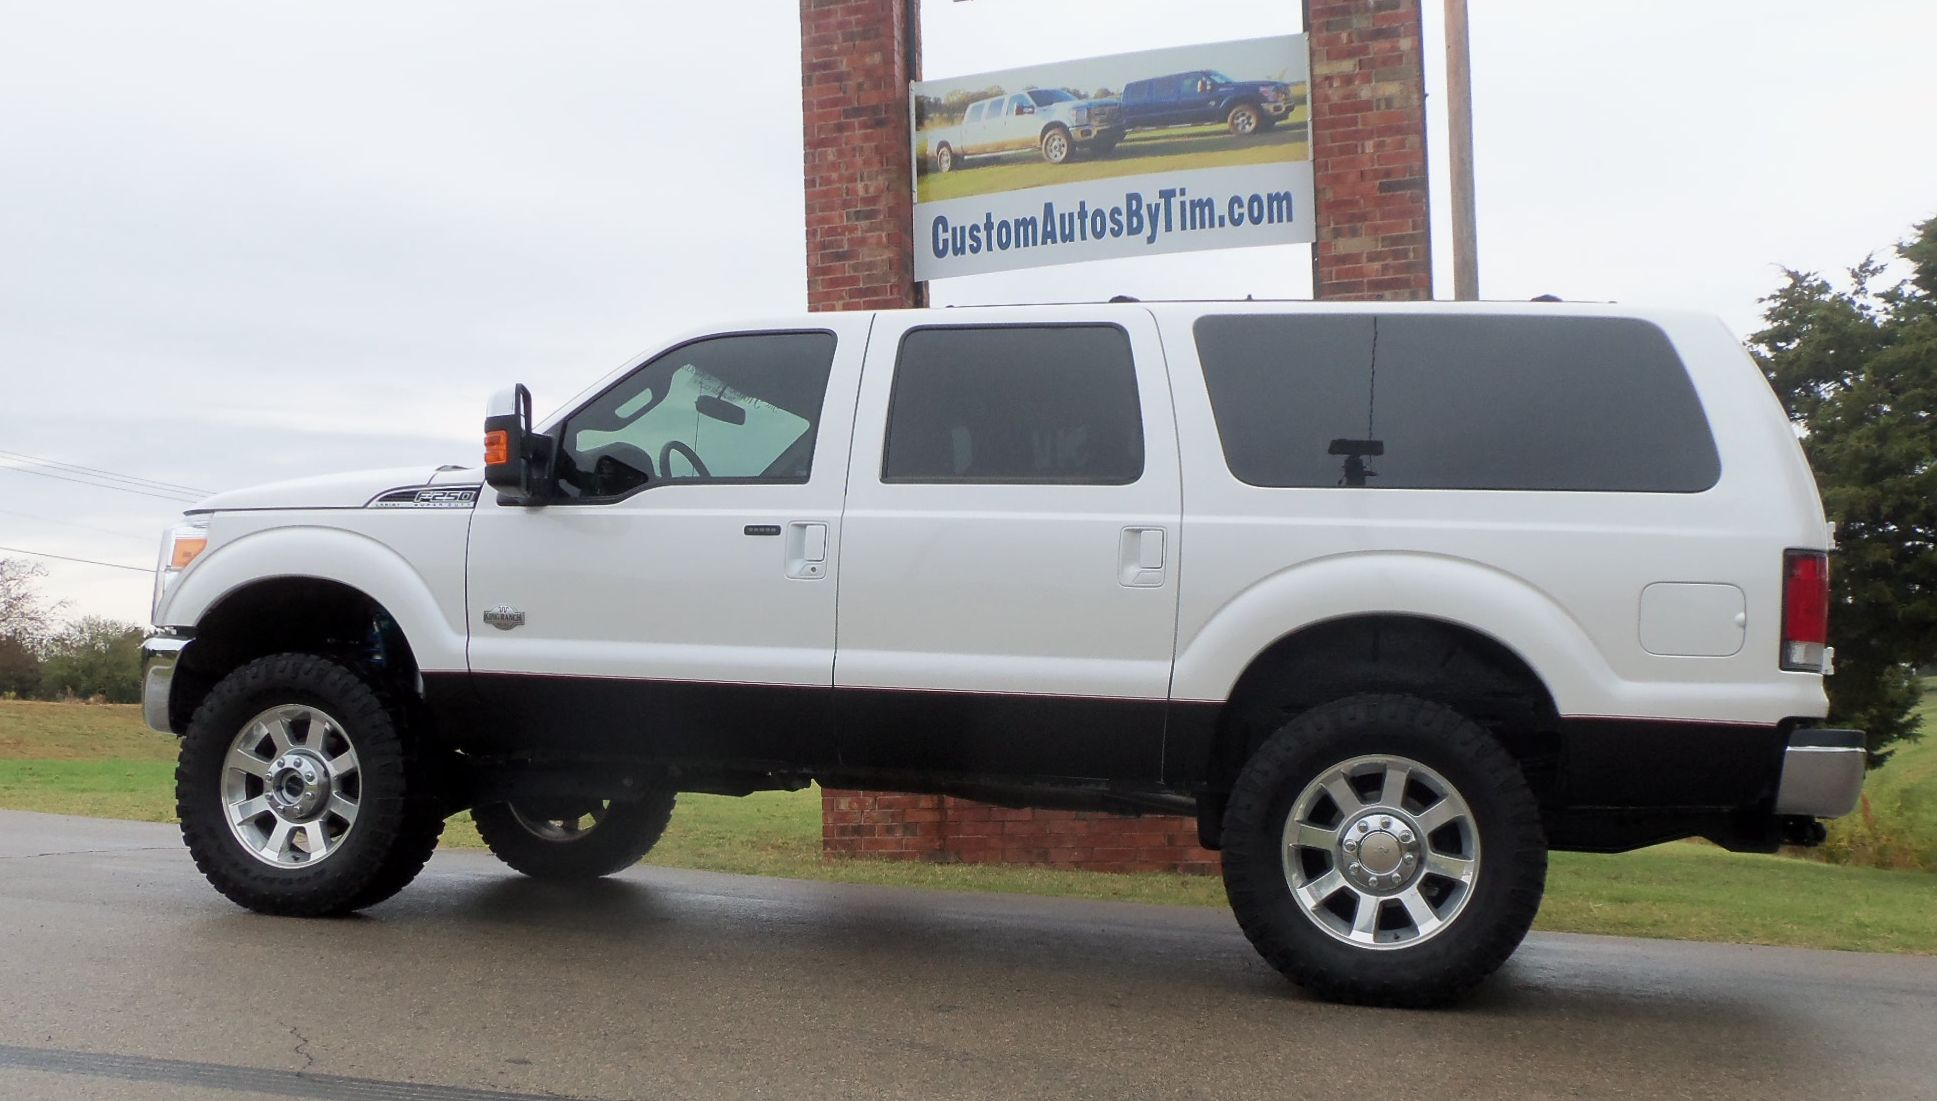 Six Door Truck CABT Ford Excursions and Super Duty s